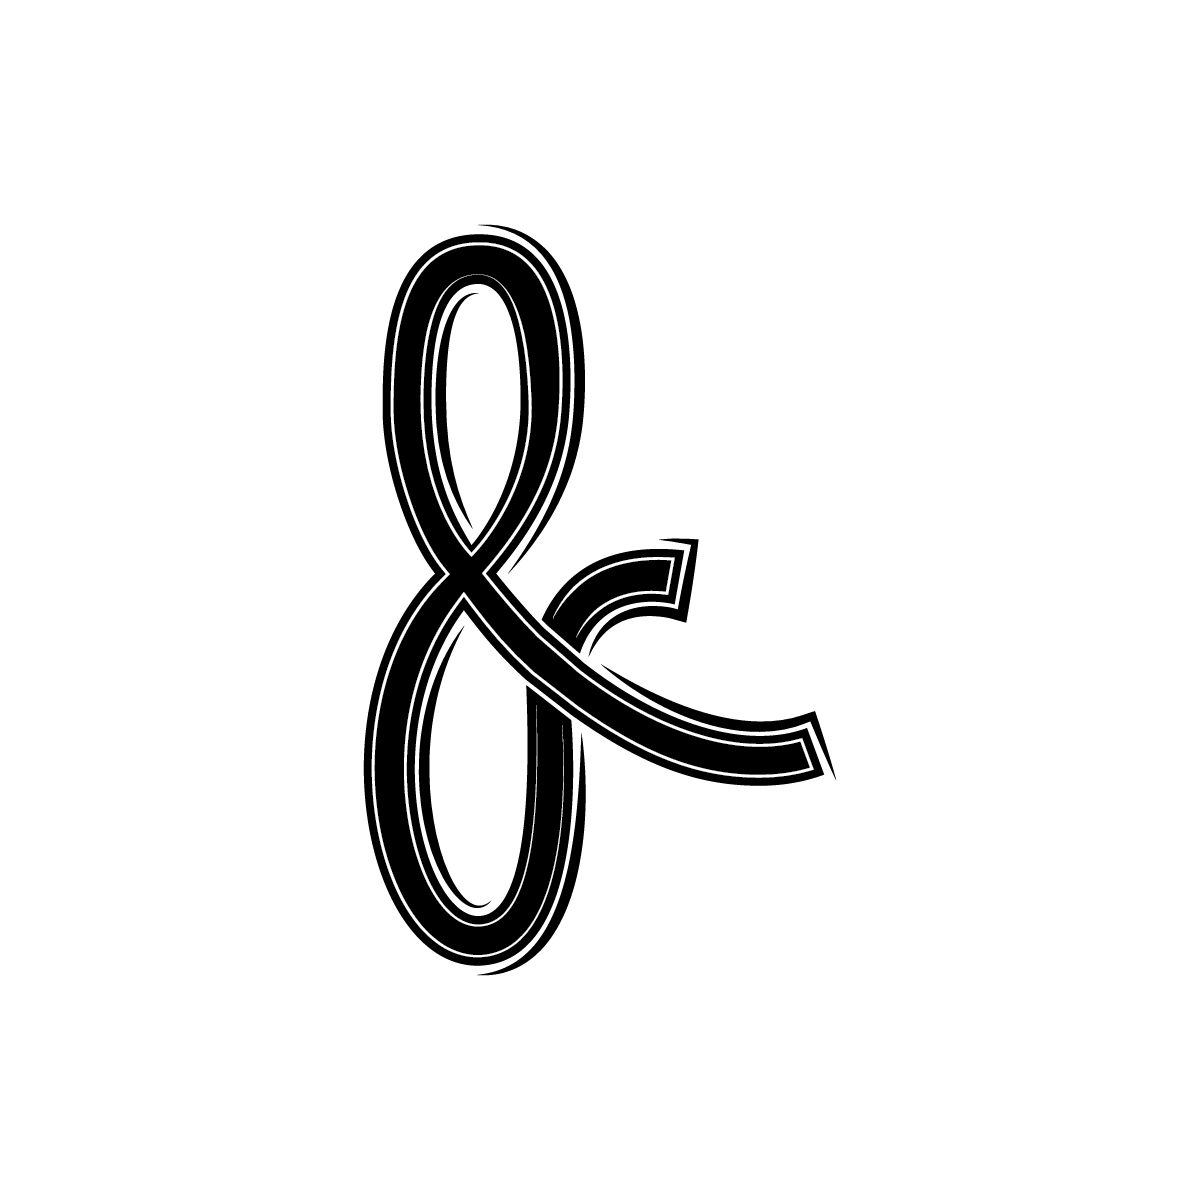 Ampersand_Grid_02-11